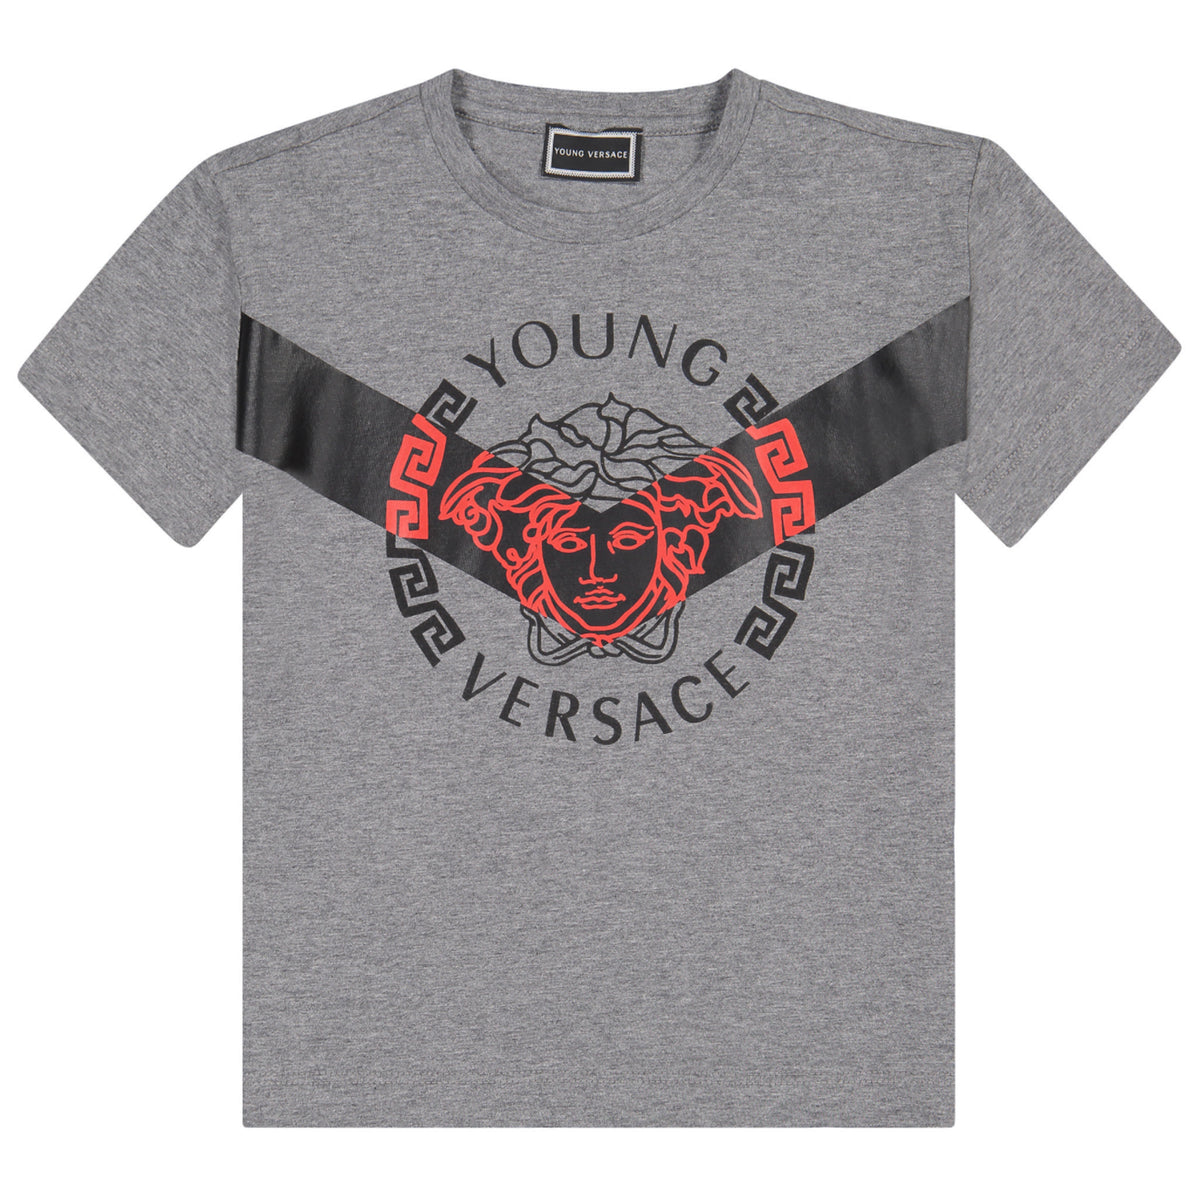 44c3be8ada7b Versace Boys Grey Medusa Logo T-shirt – Petit New York